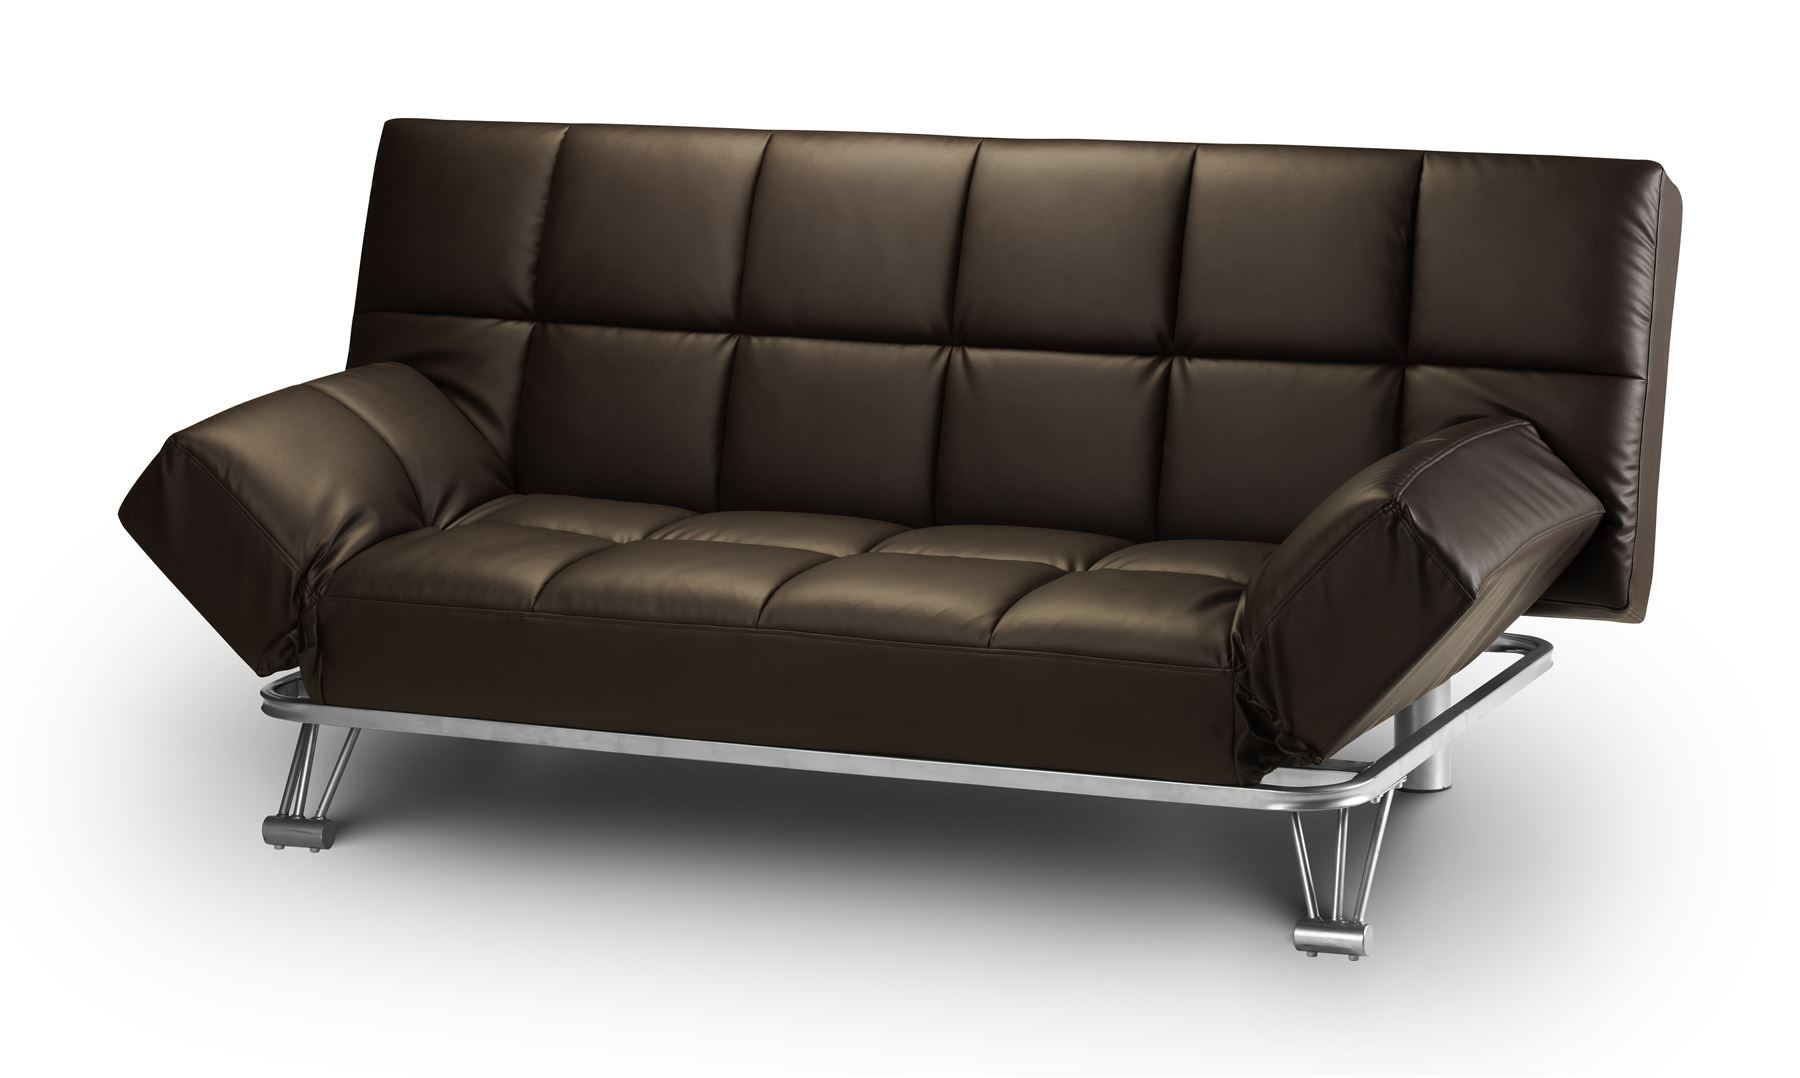 Julian Bowen Manhattan Sofa Bed Settee Brown Faux Leather Modern Retro